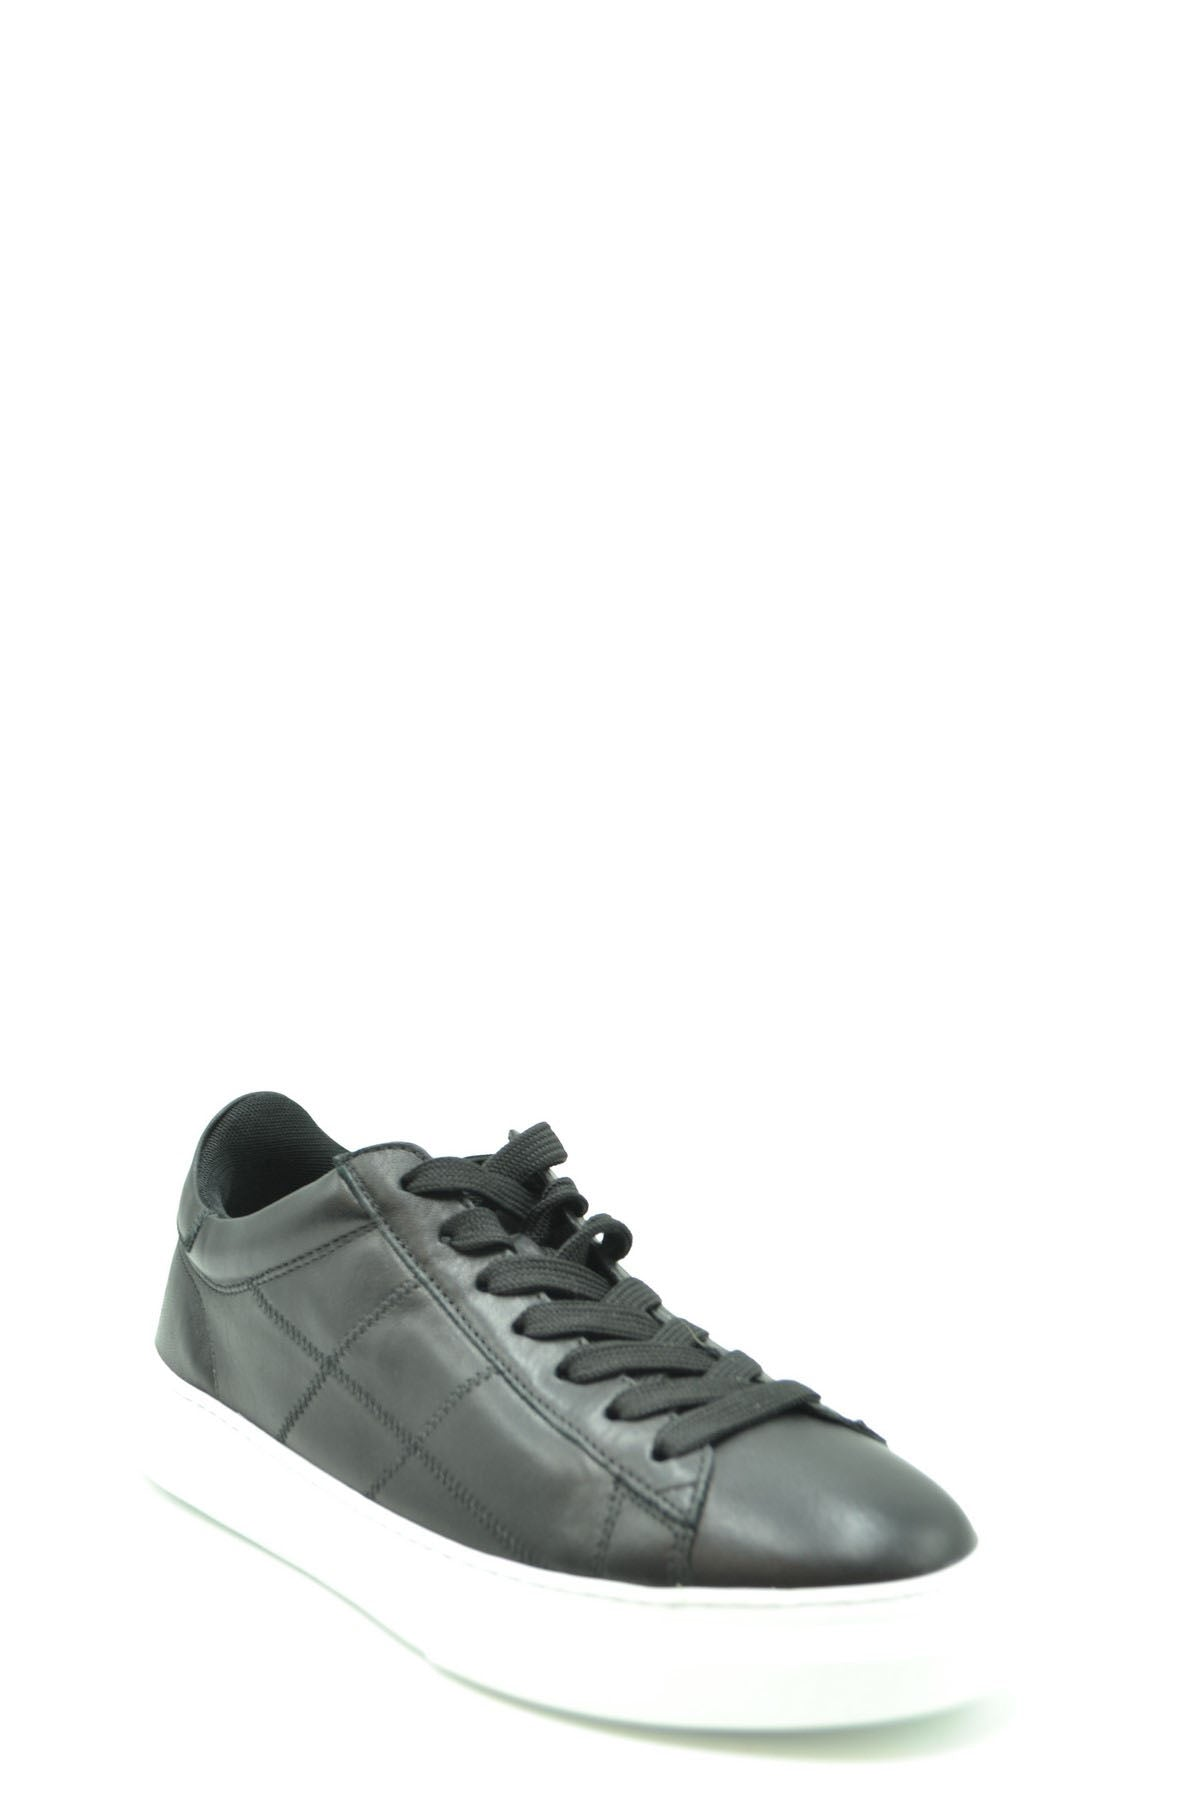 Shoes Hogan-Sports & Entertainment - Sneakers-Product Details Manufacturer Part Number: Hxm3650K694Le9B999Year: 2020Composition: Leather 100%Size: UkGender: ManMade In: ItalySeason: Fall / WinterType Of Accessory: ShoesMain Color: BlackTerms: New With Label-Keyomi-Sook